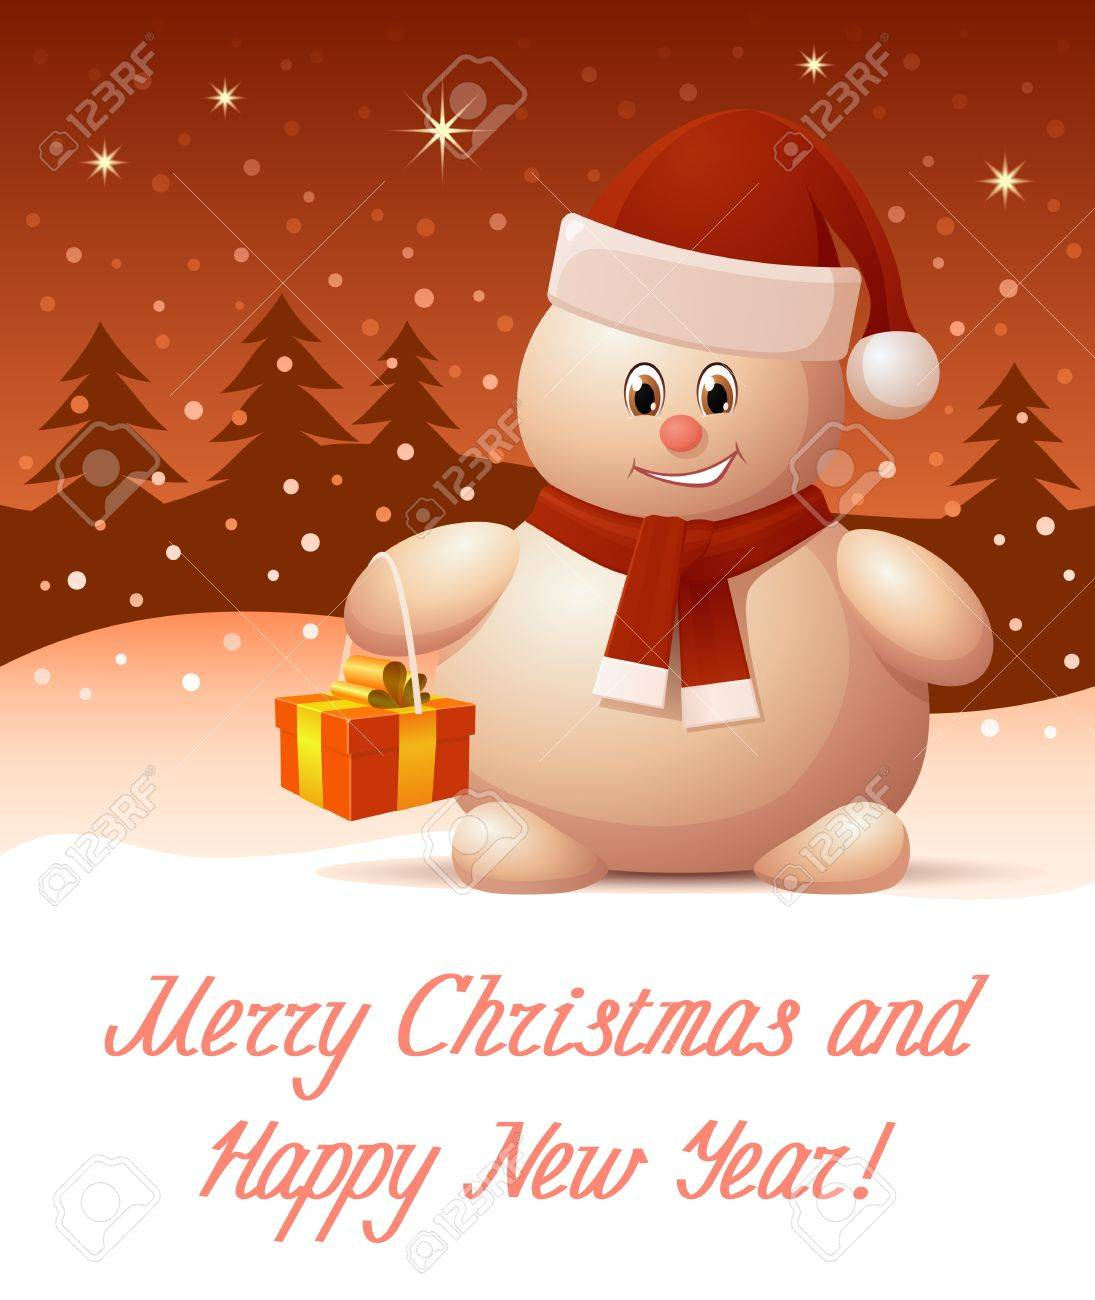 Merry christmas and happy new year greeting card royalty free merry christmas and happy new year greeting card stock vector 11512979 kristyandbryce Images